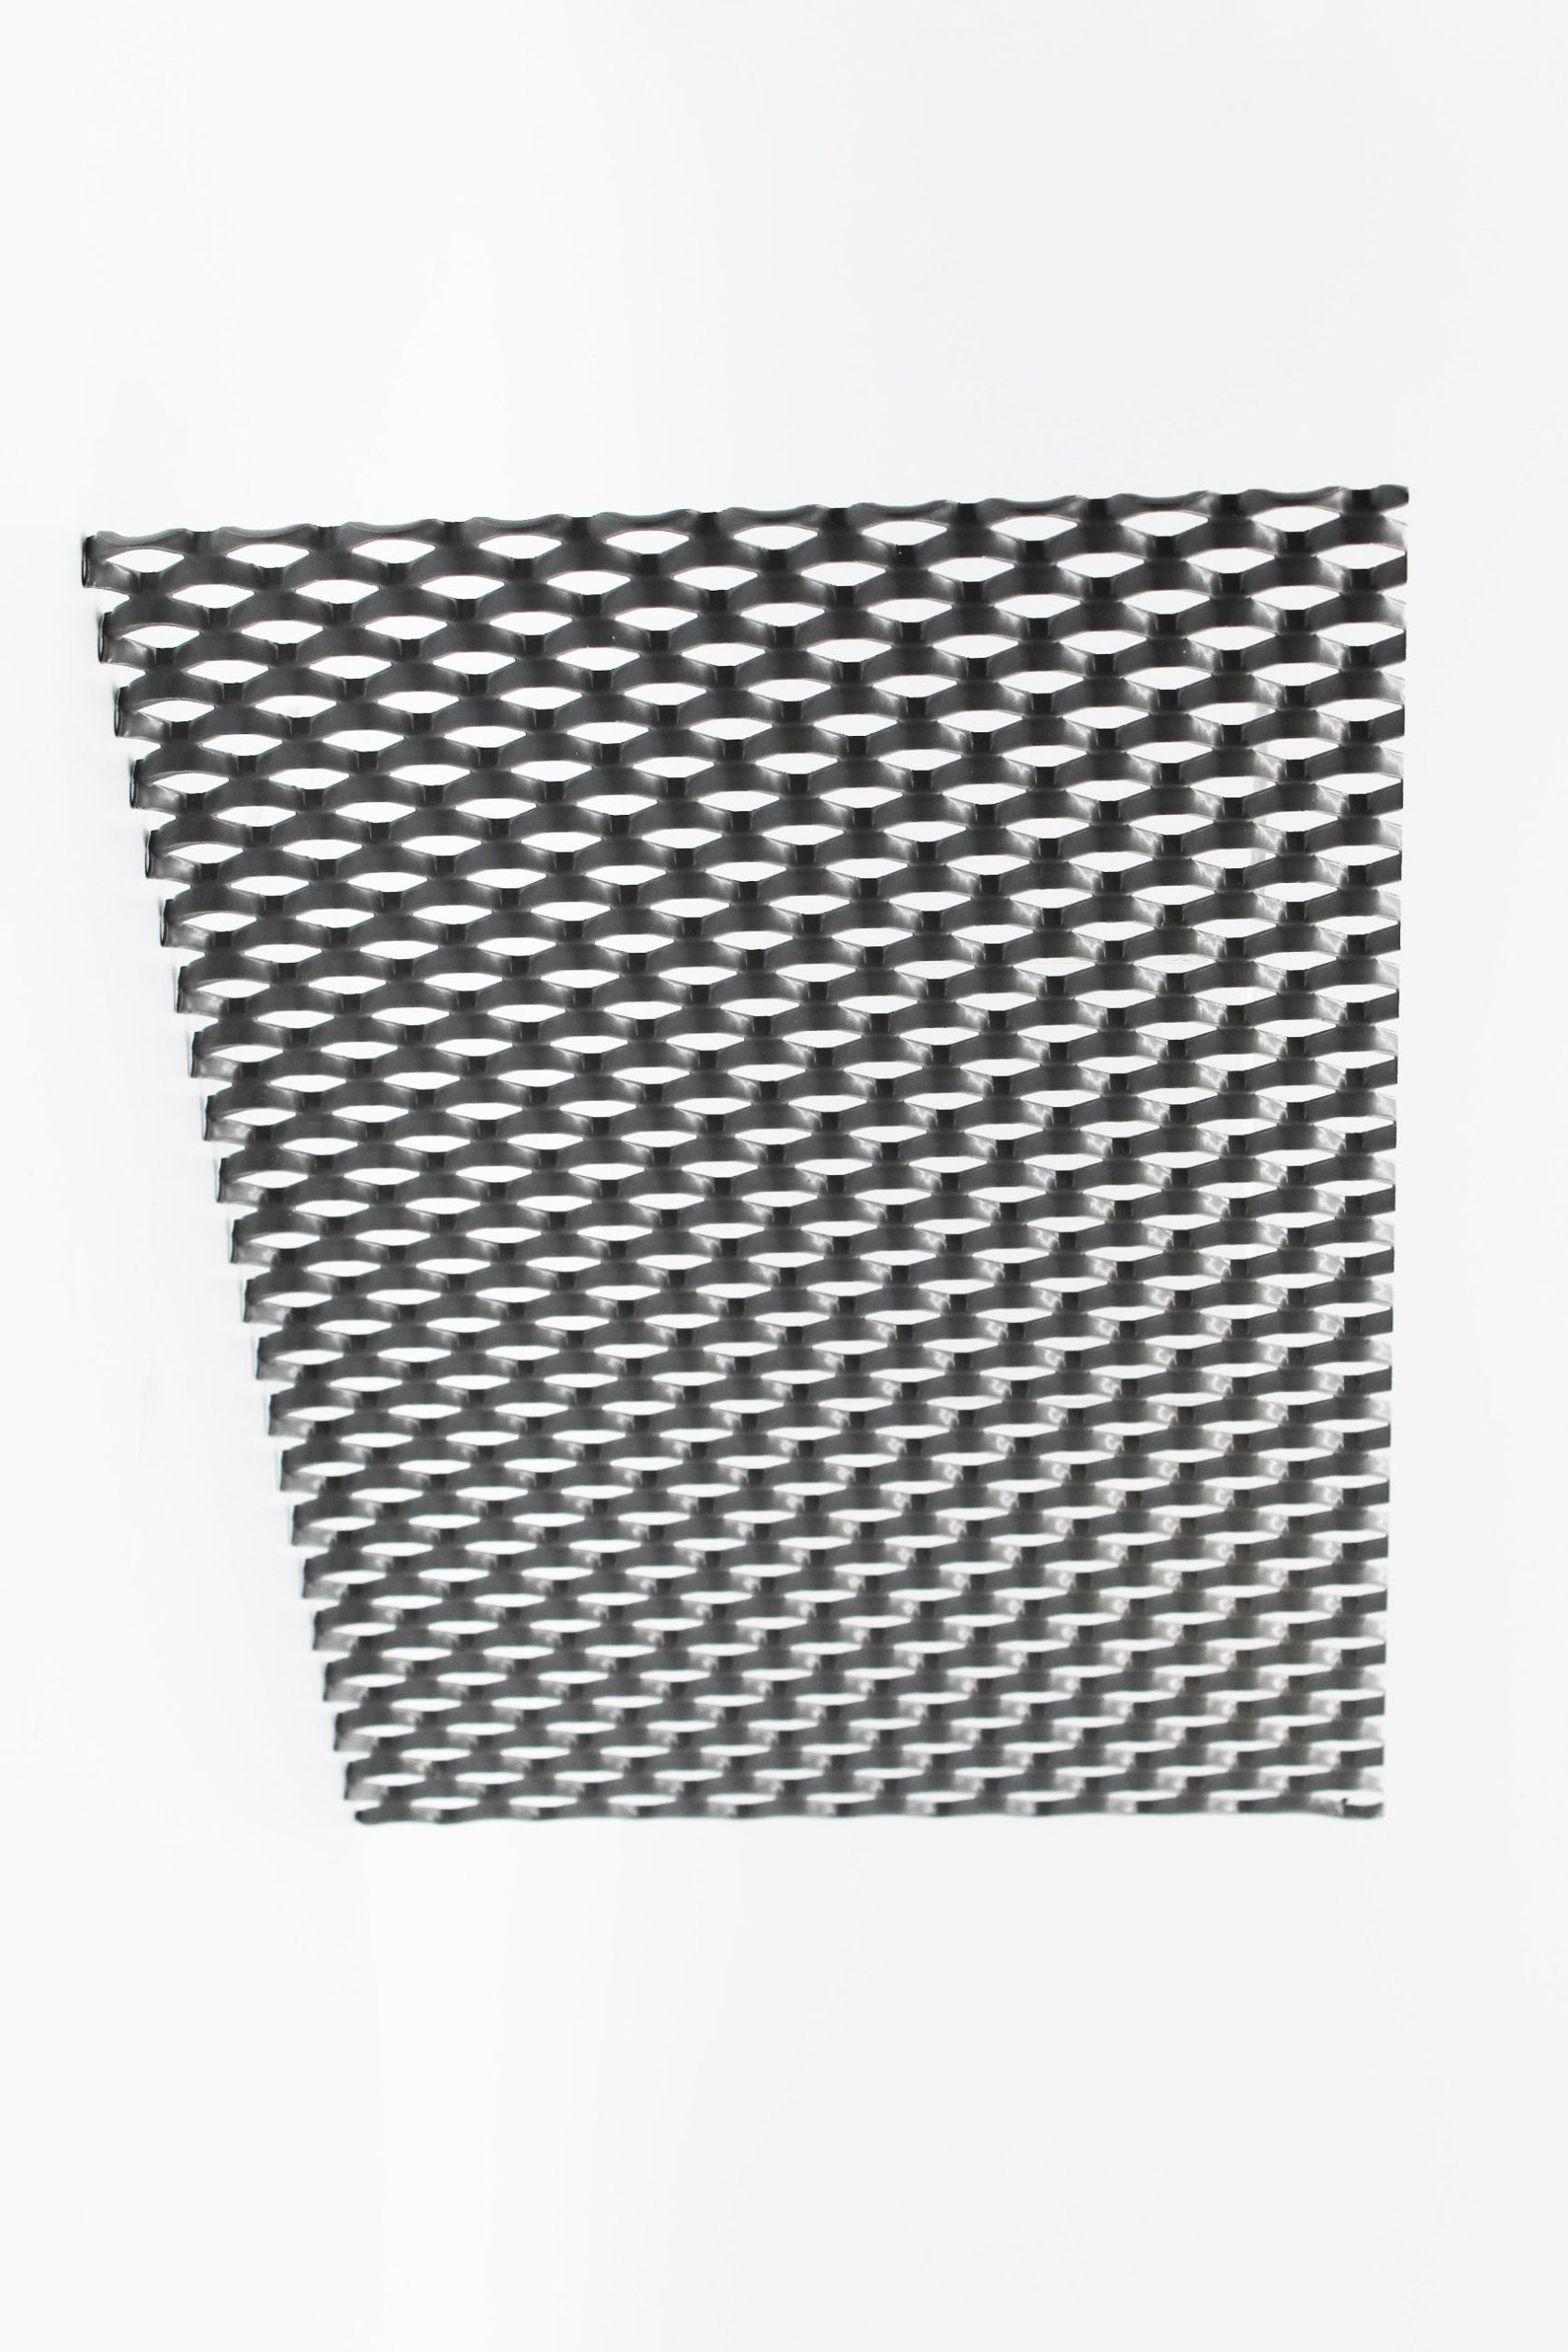 Soho XL grey expanded architectural mesh